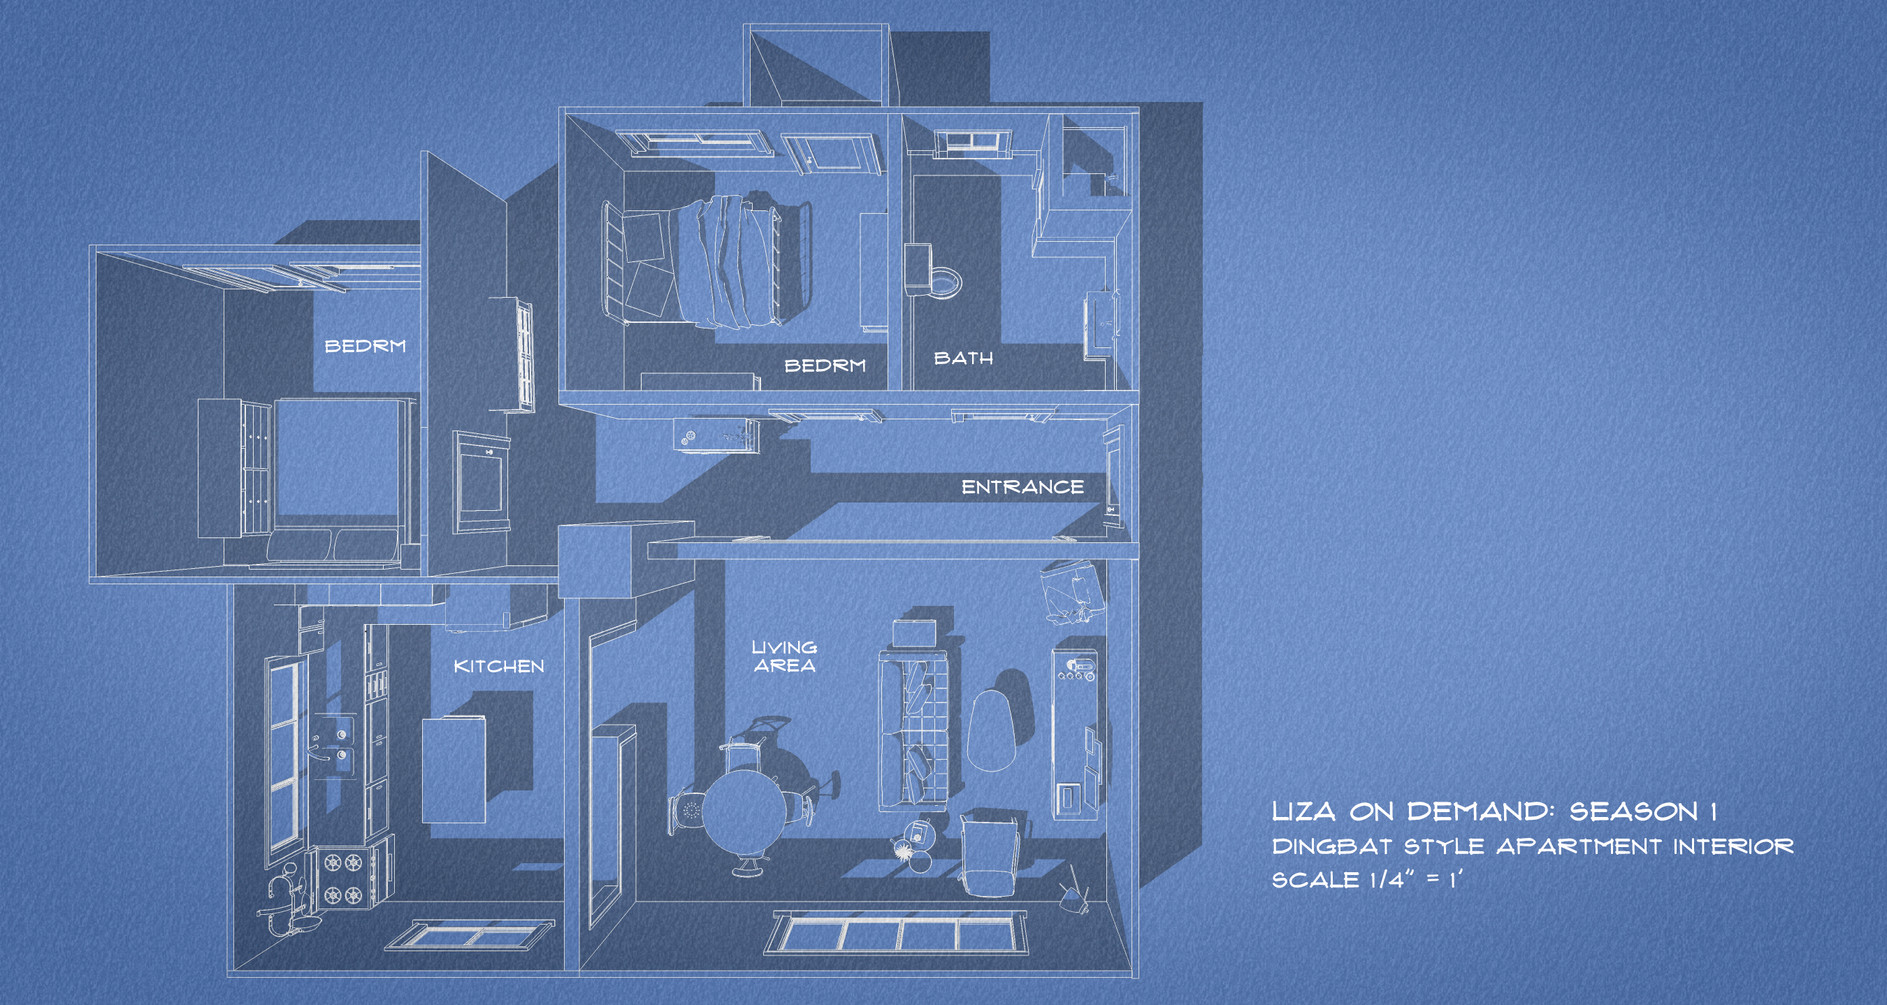 Apartment Set Plan - Built on stage